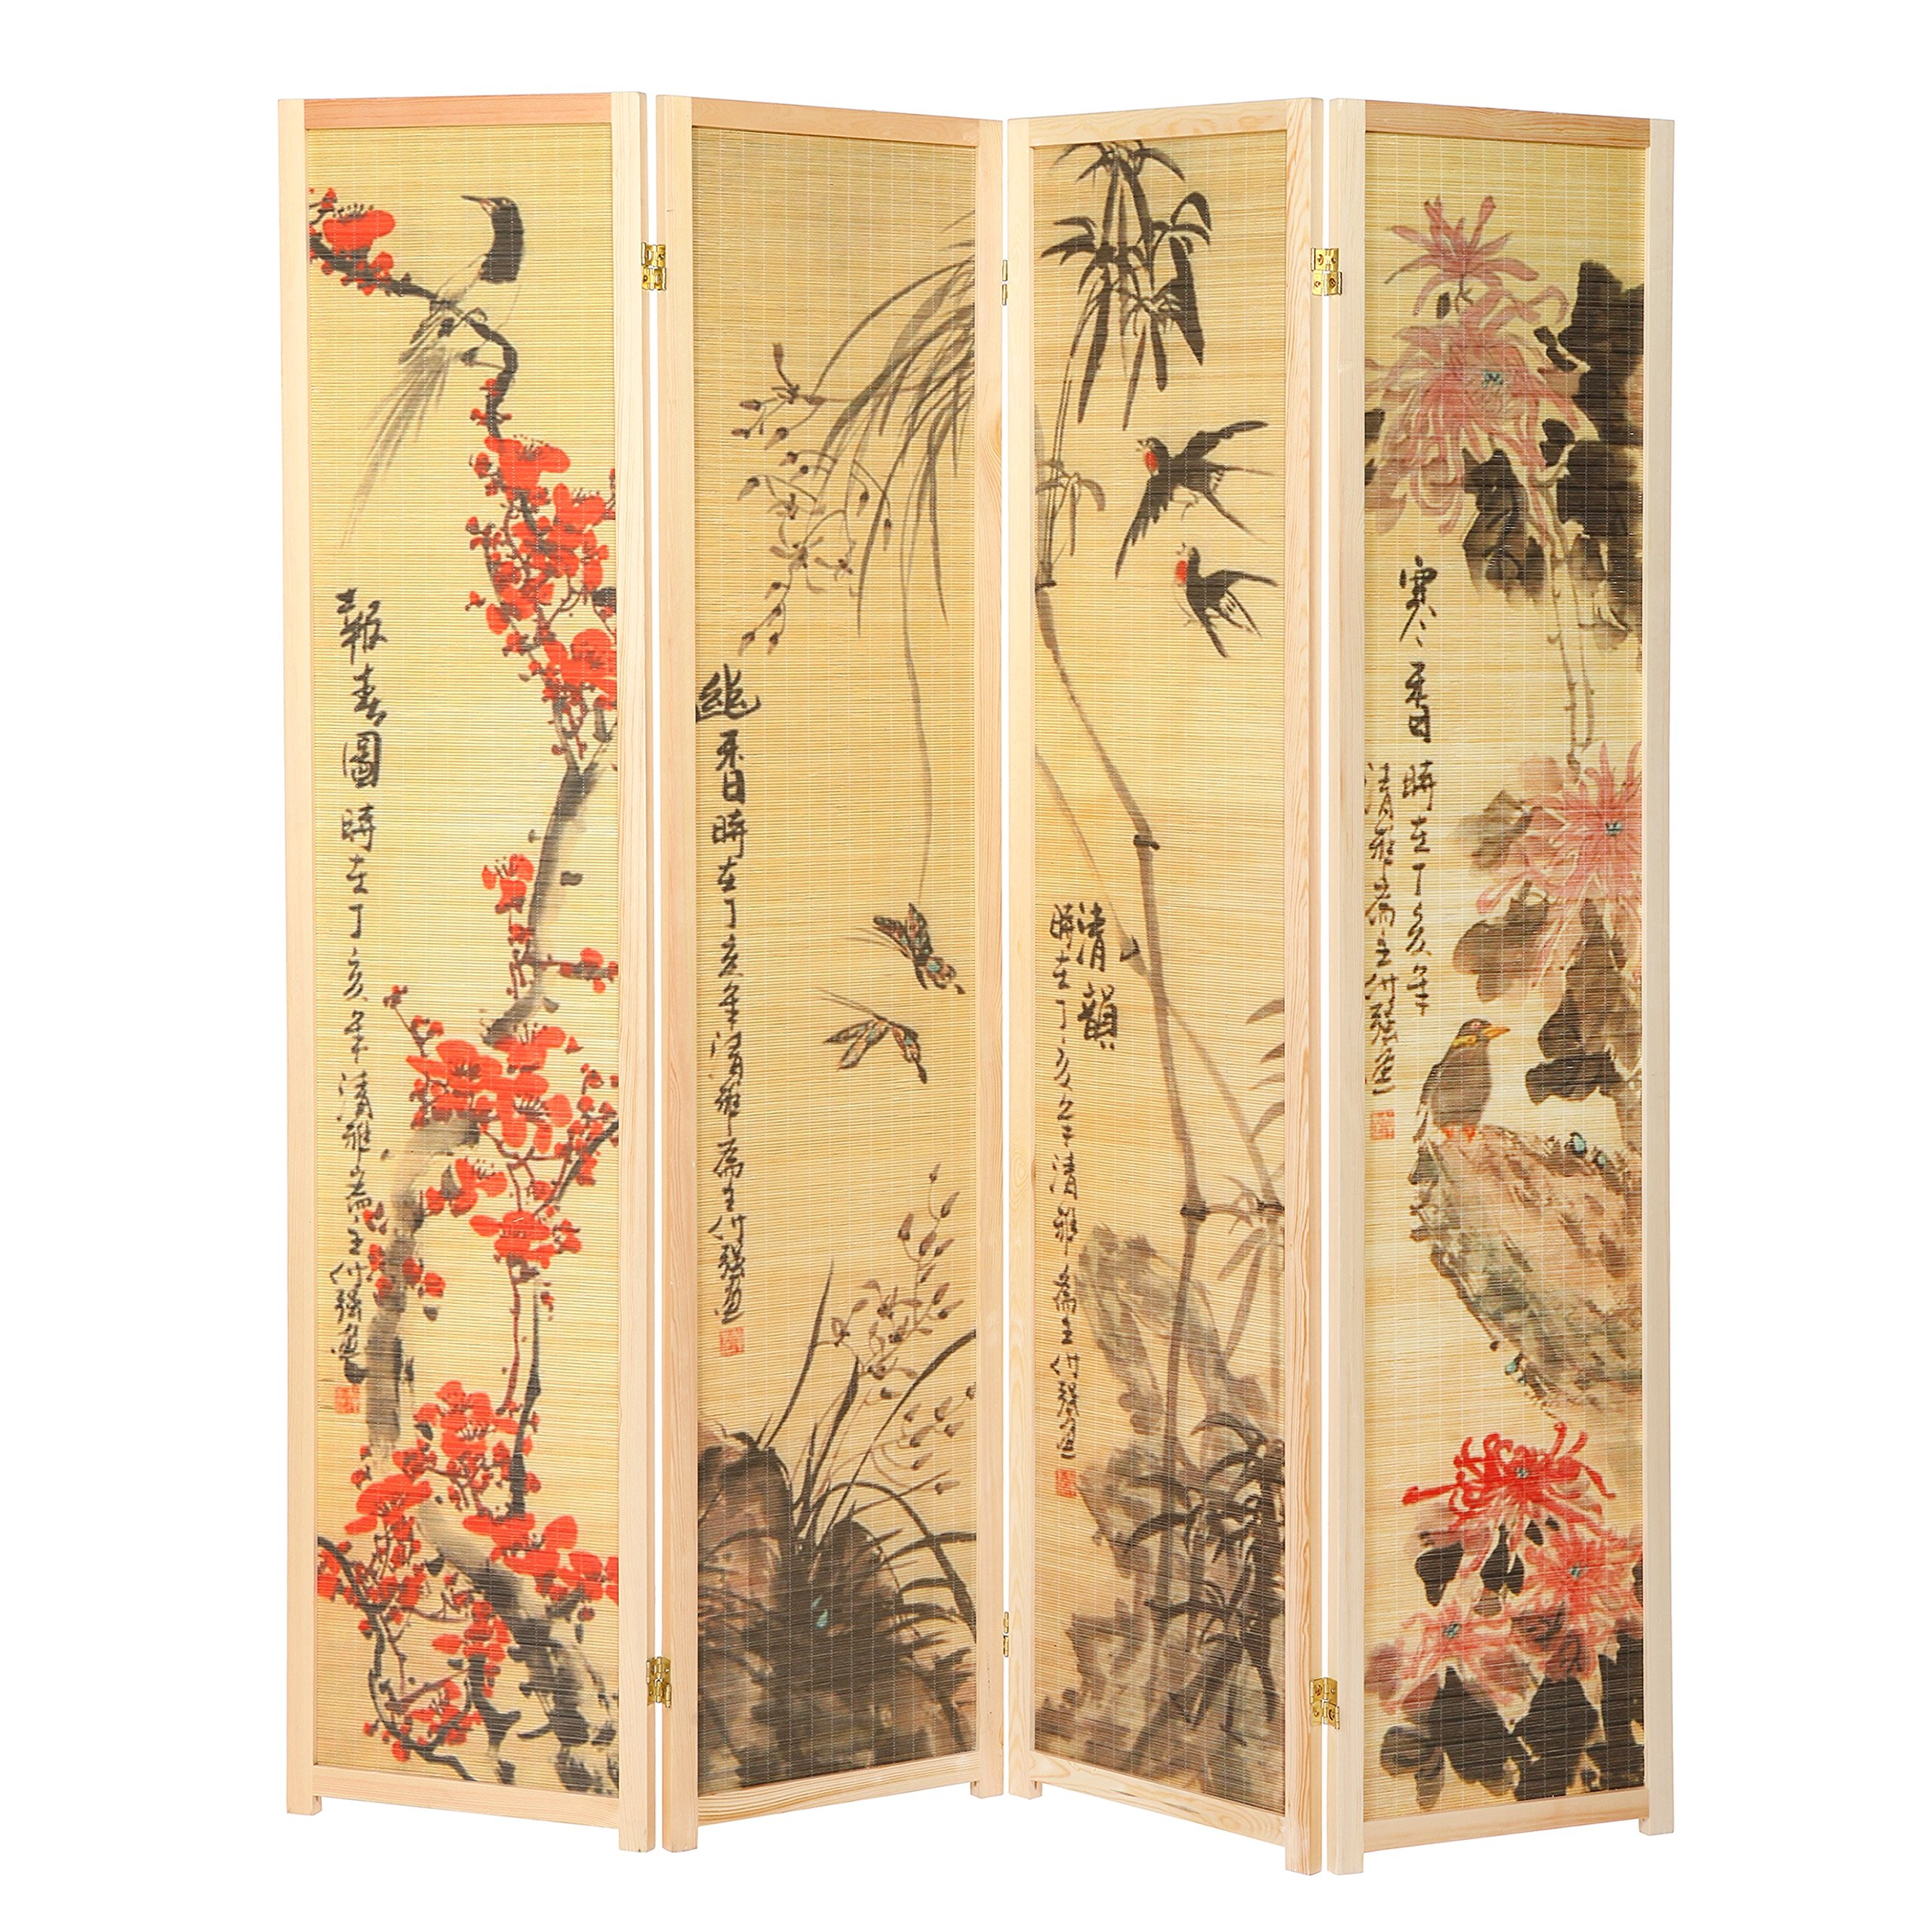 MyGift Decorative Chinese Calligraphy Design Wood & Bamboo Hinged 4 Panel Screen/Freestanding Room Divide, Beige Frame by MyGift